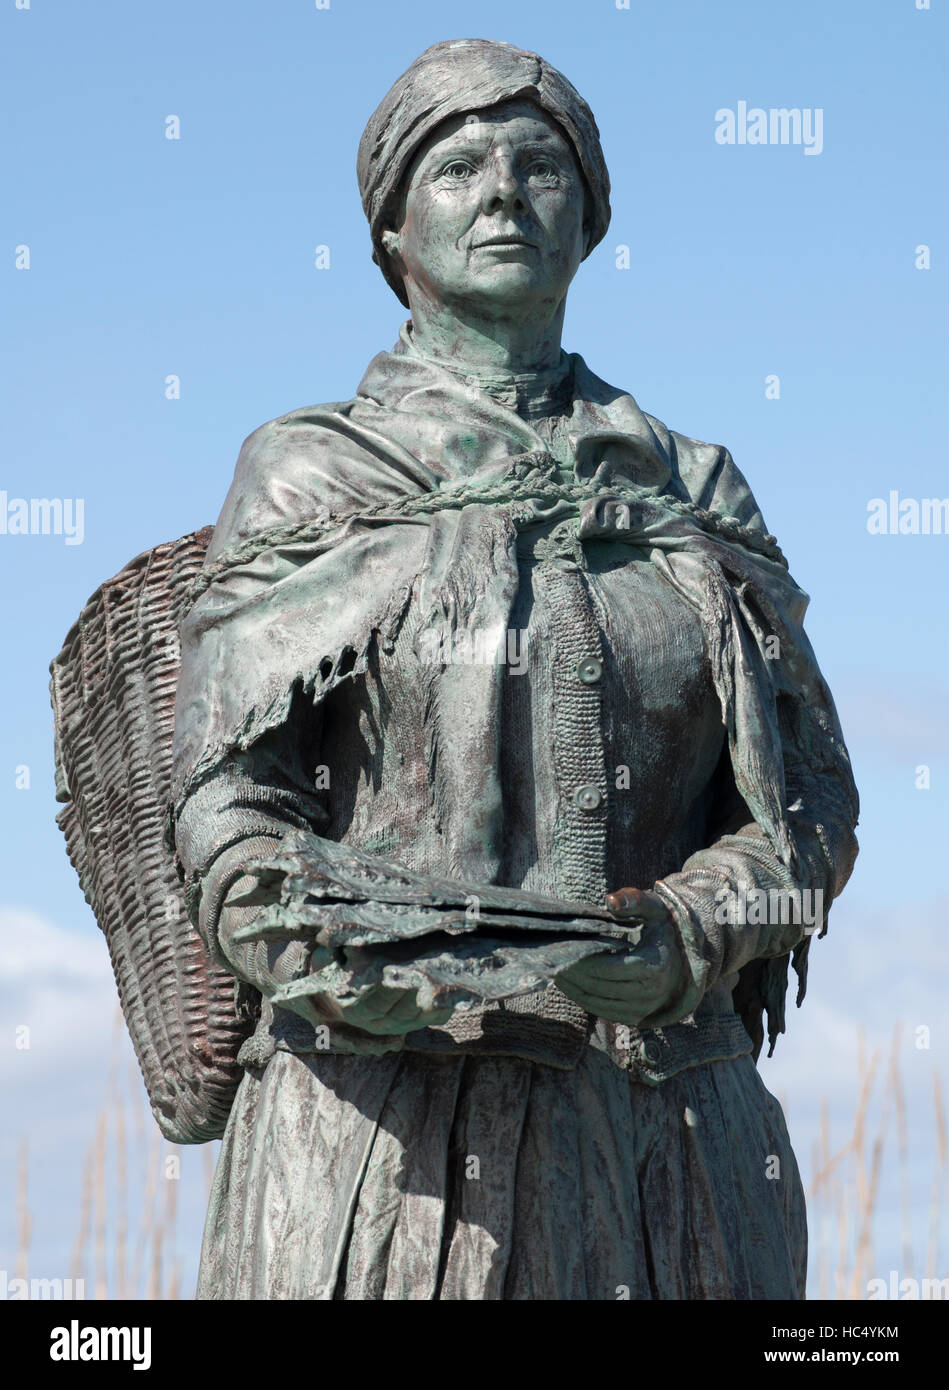 Statue of a Nairn fishwife in the harbour at Nairn, Moray Firth, Highland, Scotland, UK. - Stock Image